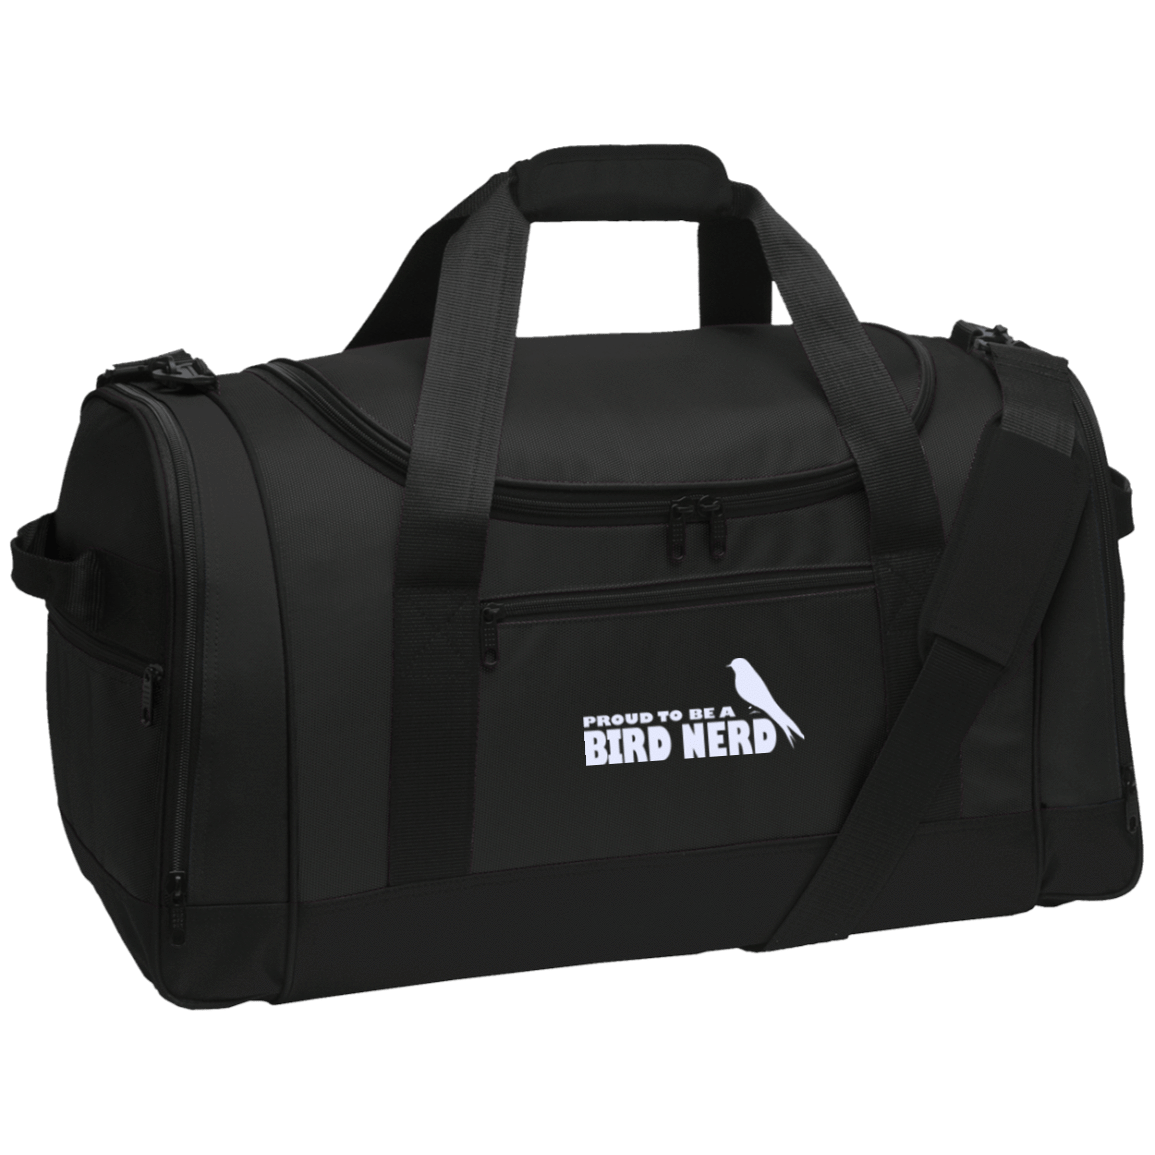 BG800 Port Authority Travel Sports Duffel birding birdnerd birdwatching